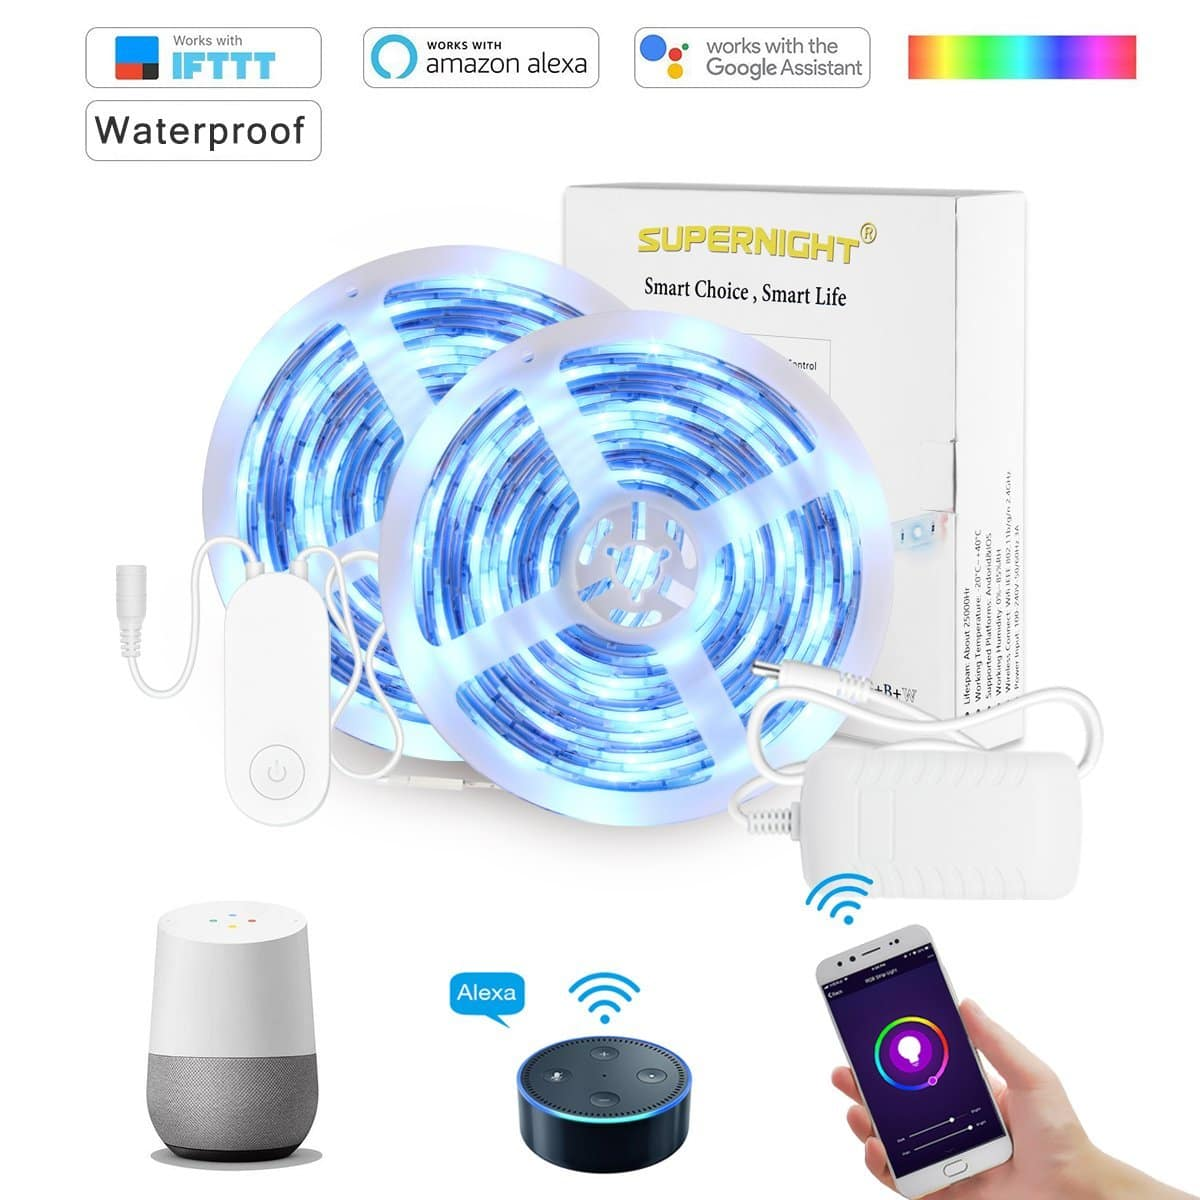 SUPERNIGHT 32.8Ft RGBW Smart LED Strip Lights Waterproof - with Heat-Conducting Adhesive, Wireless Smart Phone Controlled 560 Leds $21.5